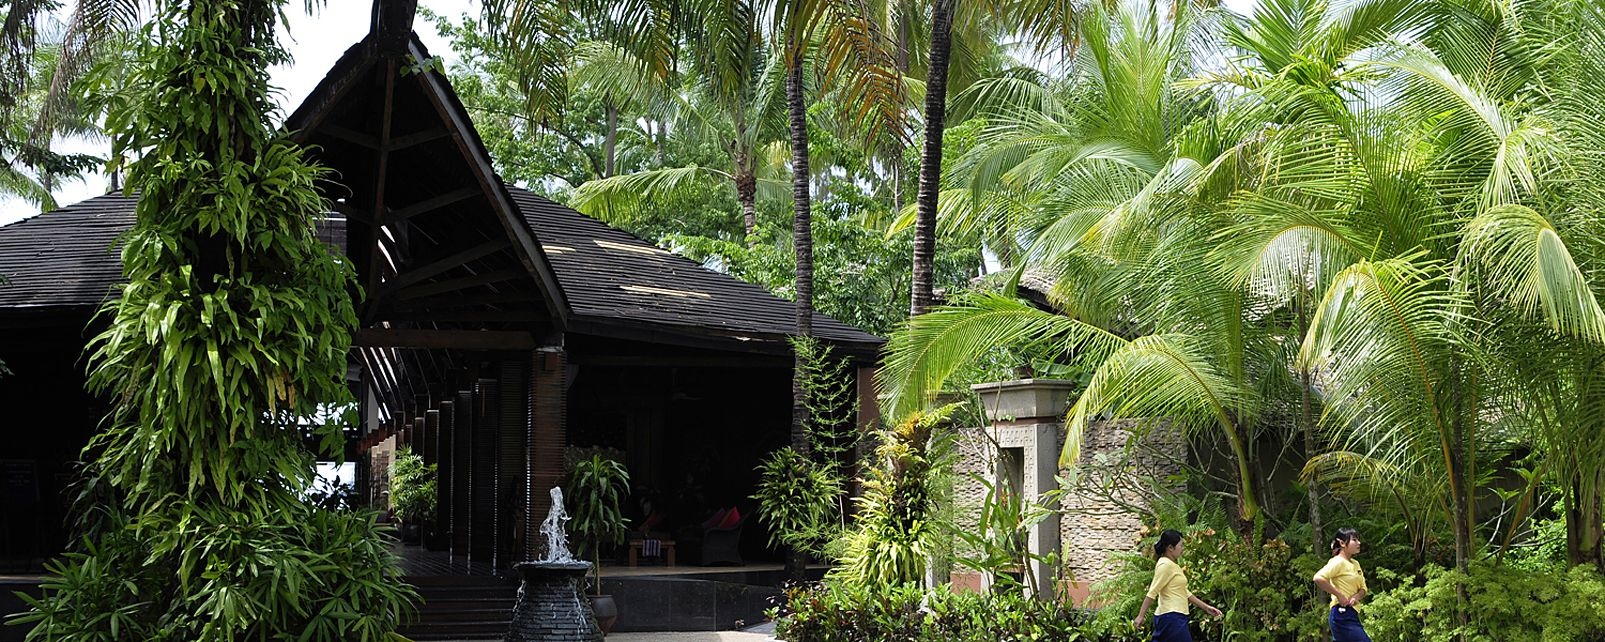 Hôtel Amata Ngapali Beach Resort & Spa